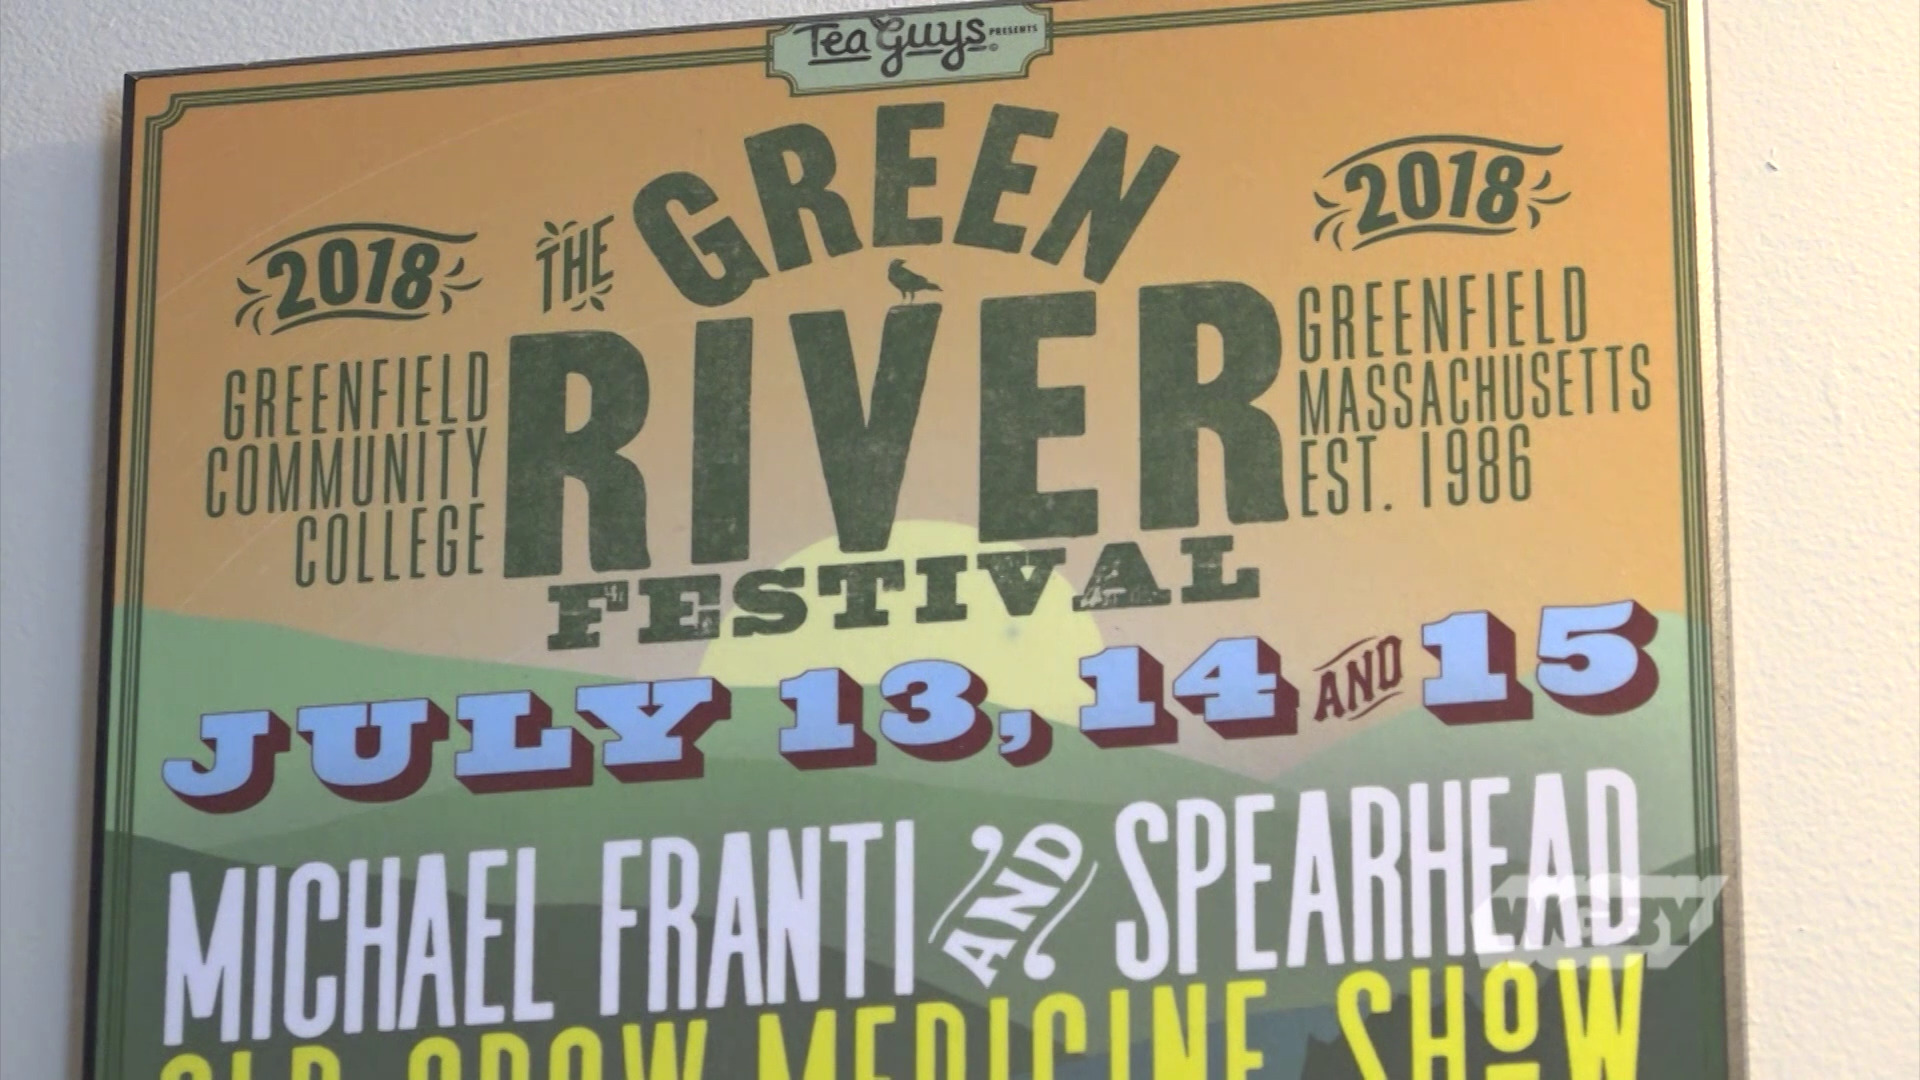 WATCH: Festival director Jim Olsen shares why they made the difficult decision to cancel this year's Green River Festival and their hopes for the 2021 fest.